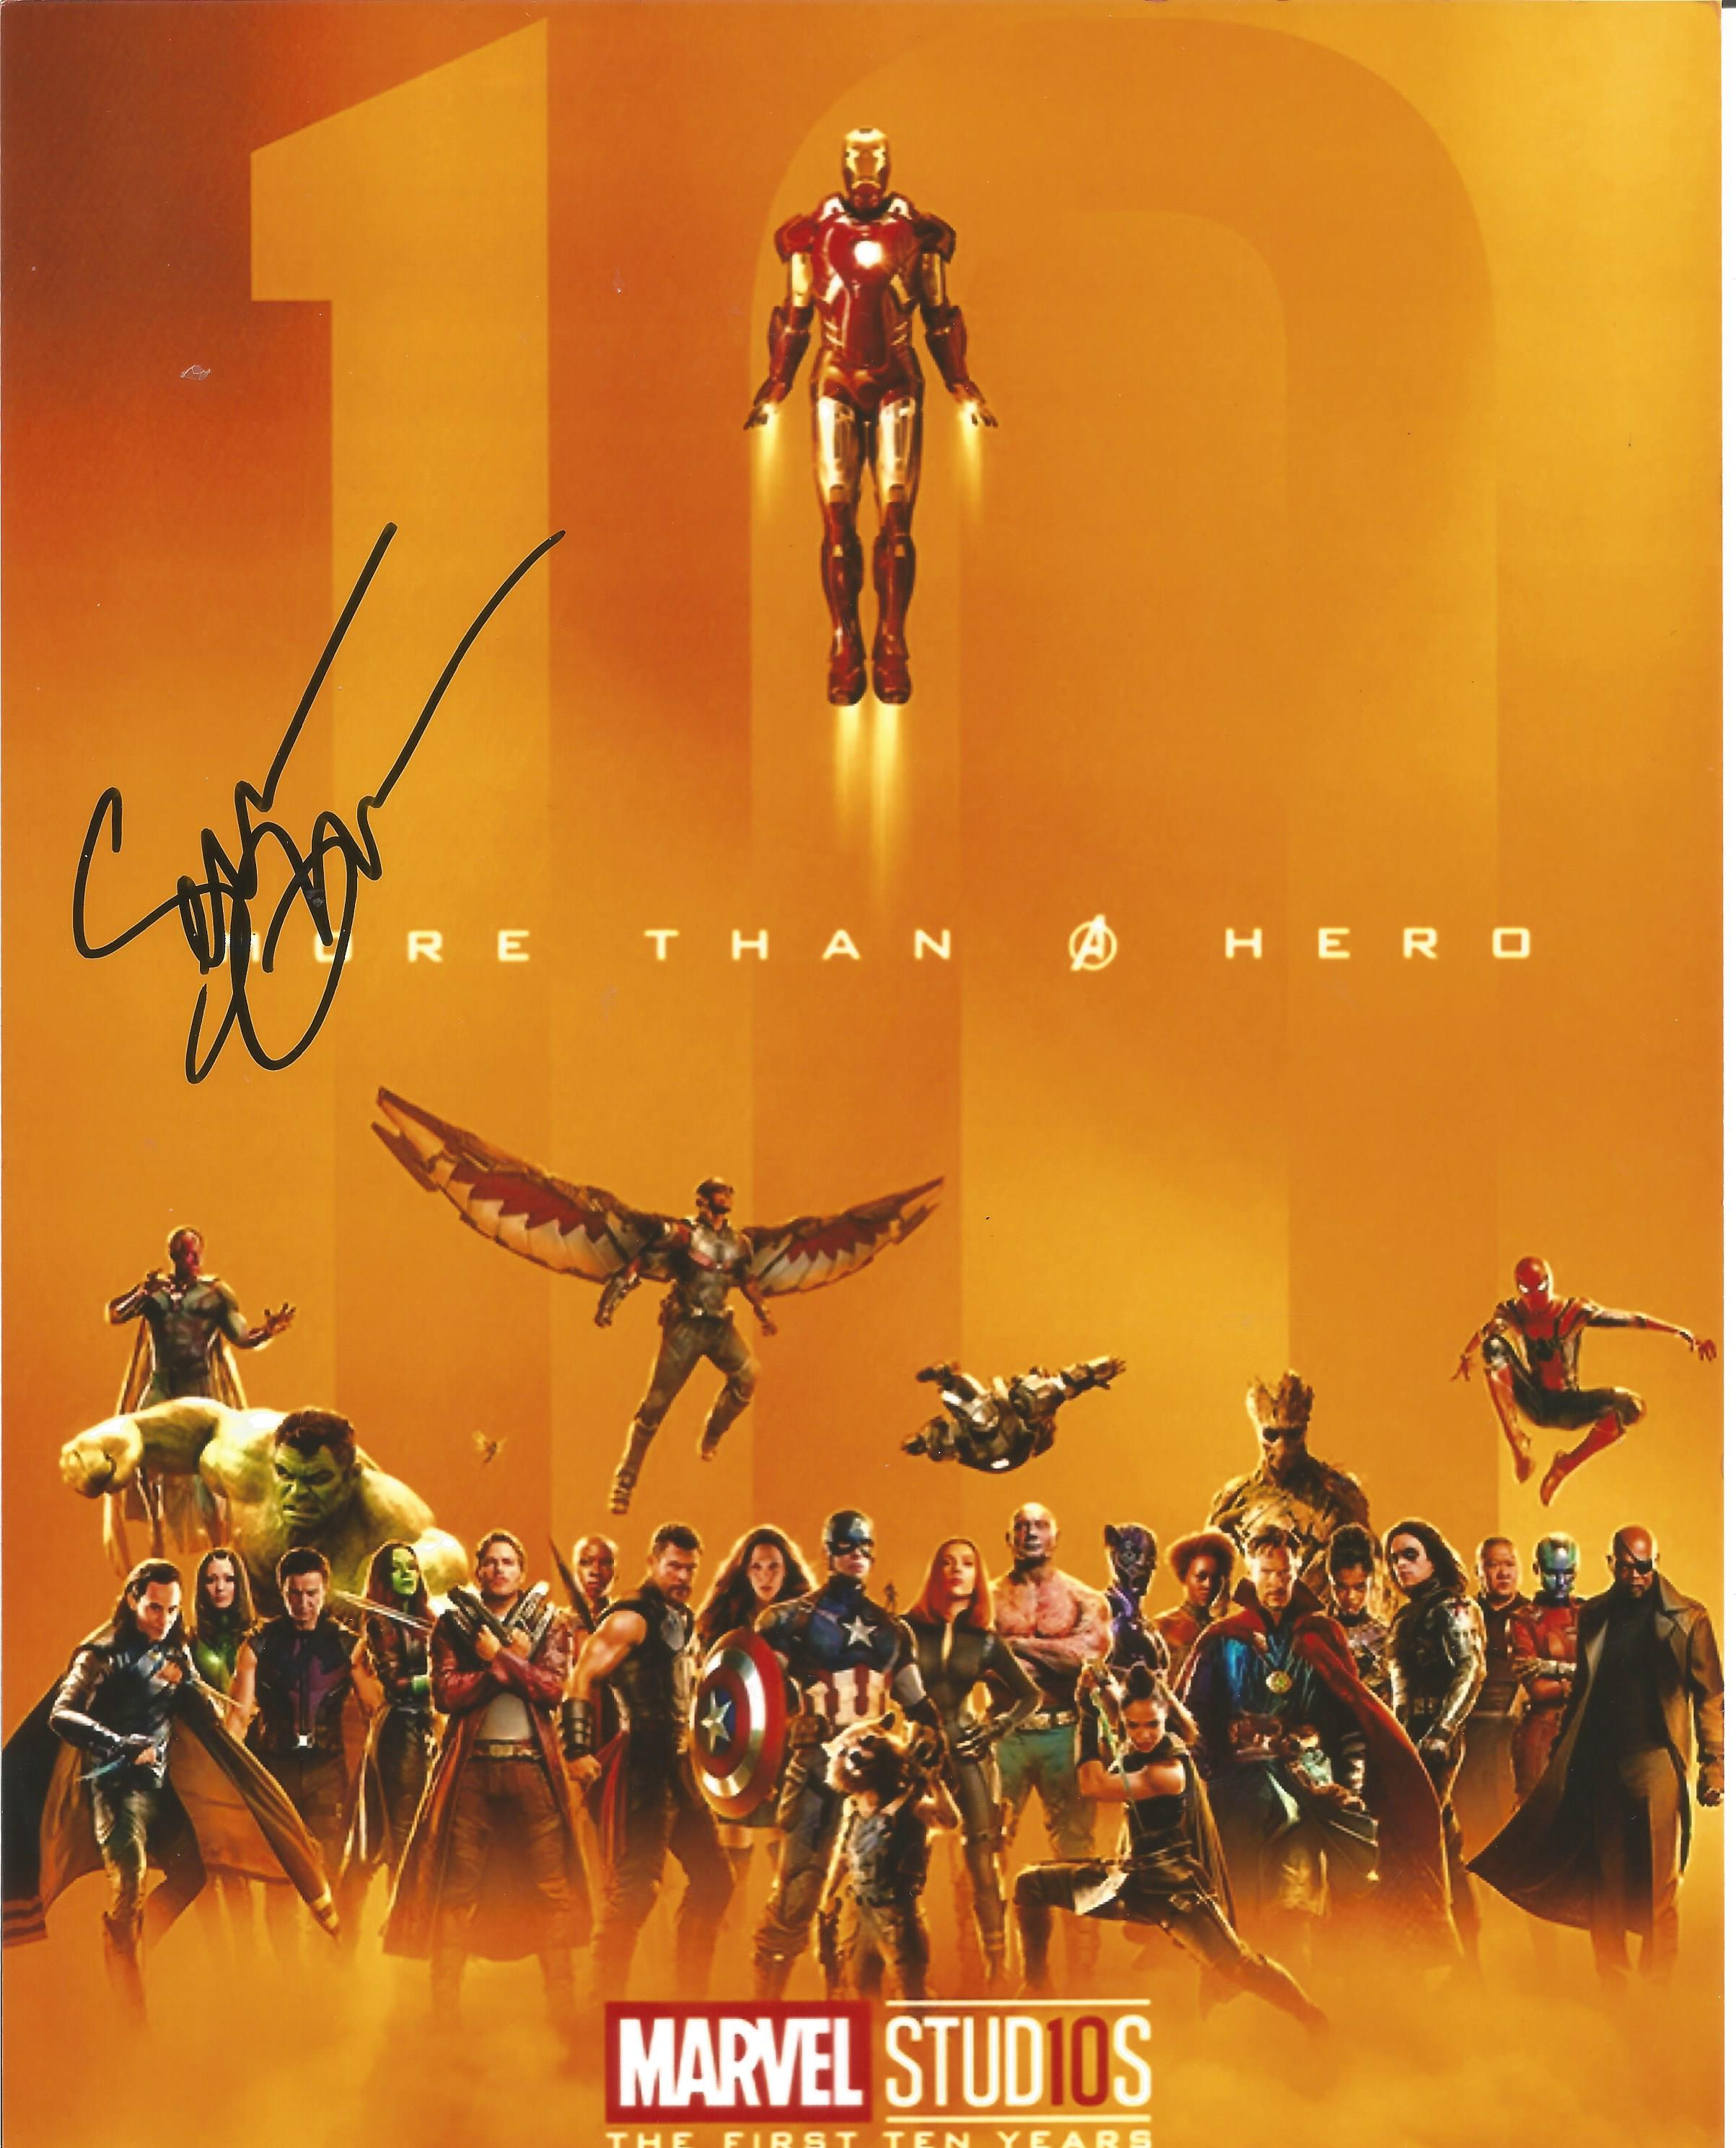 Sean Gunn signed 12x8 colour promo photograph celebrating the first 10 years of Marvel. Gunn is well